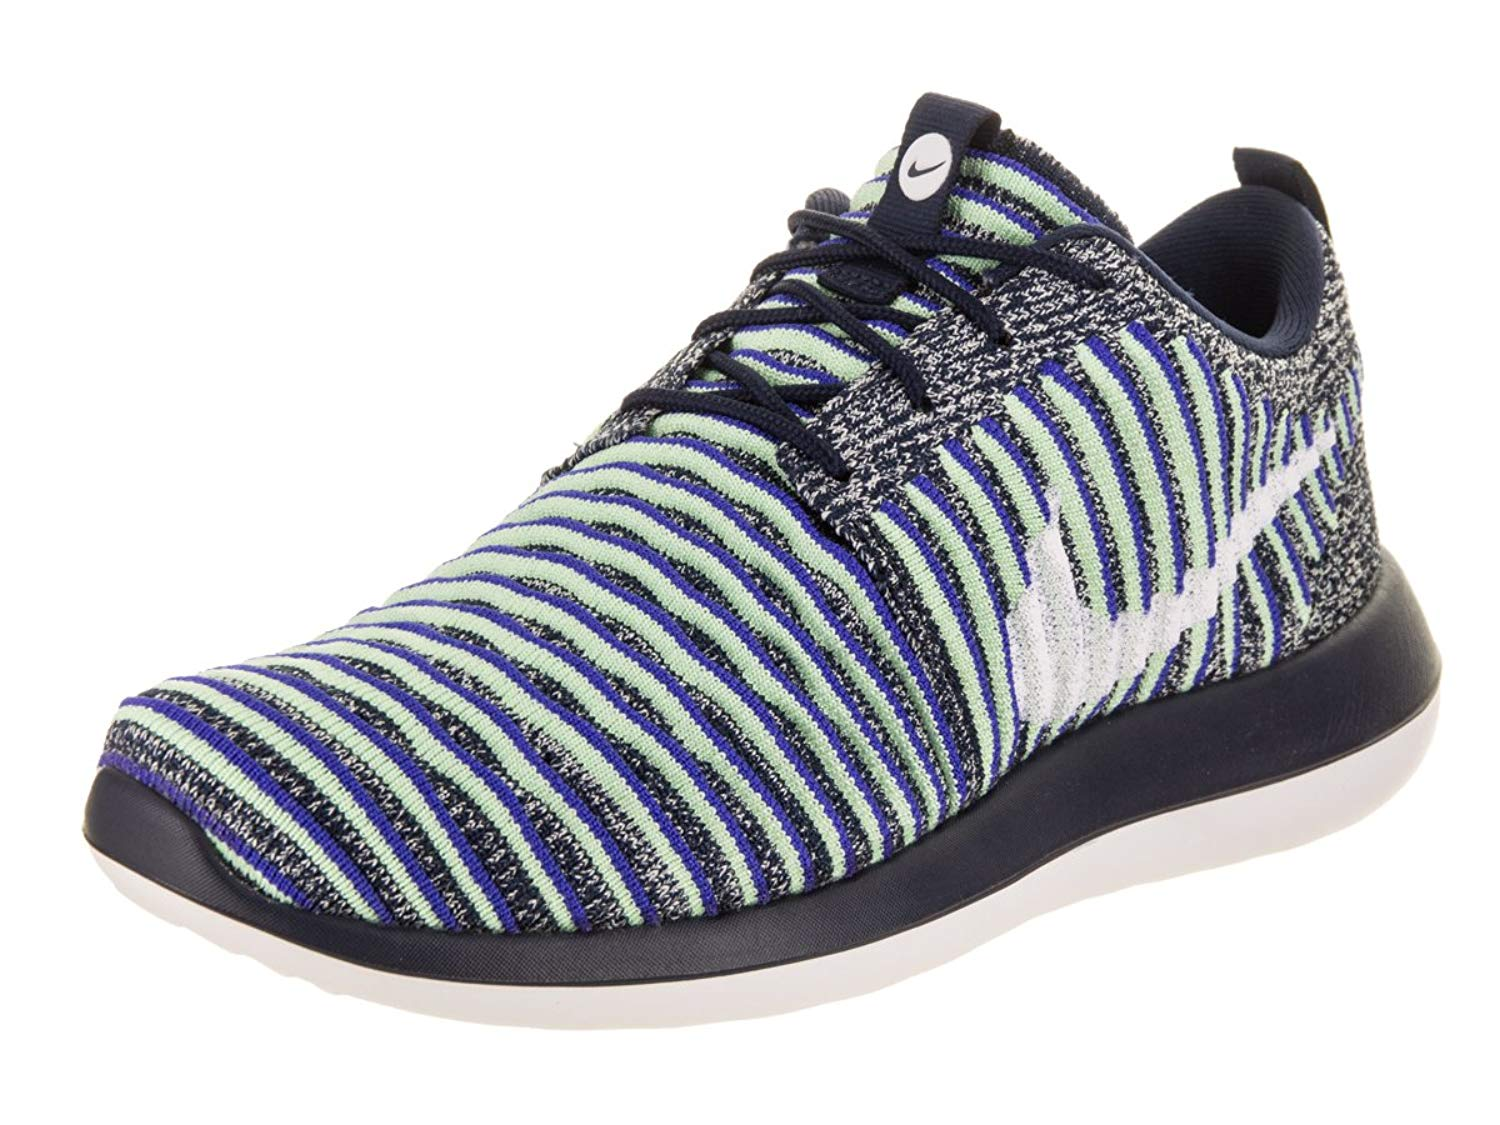 cb681e3a60ab Get Quotations · Nike Womens Roshe Two Flyknit College Navy White White  Binary Blue Running Shoe 8.5